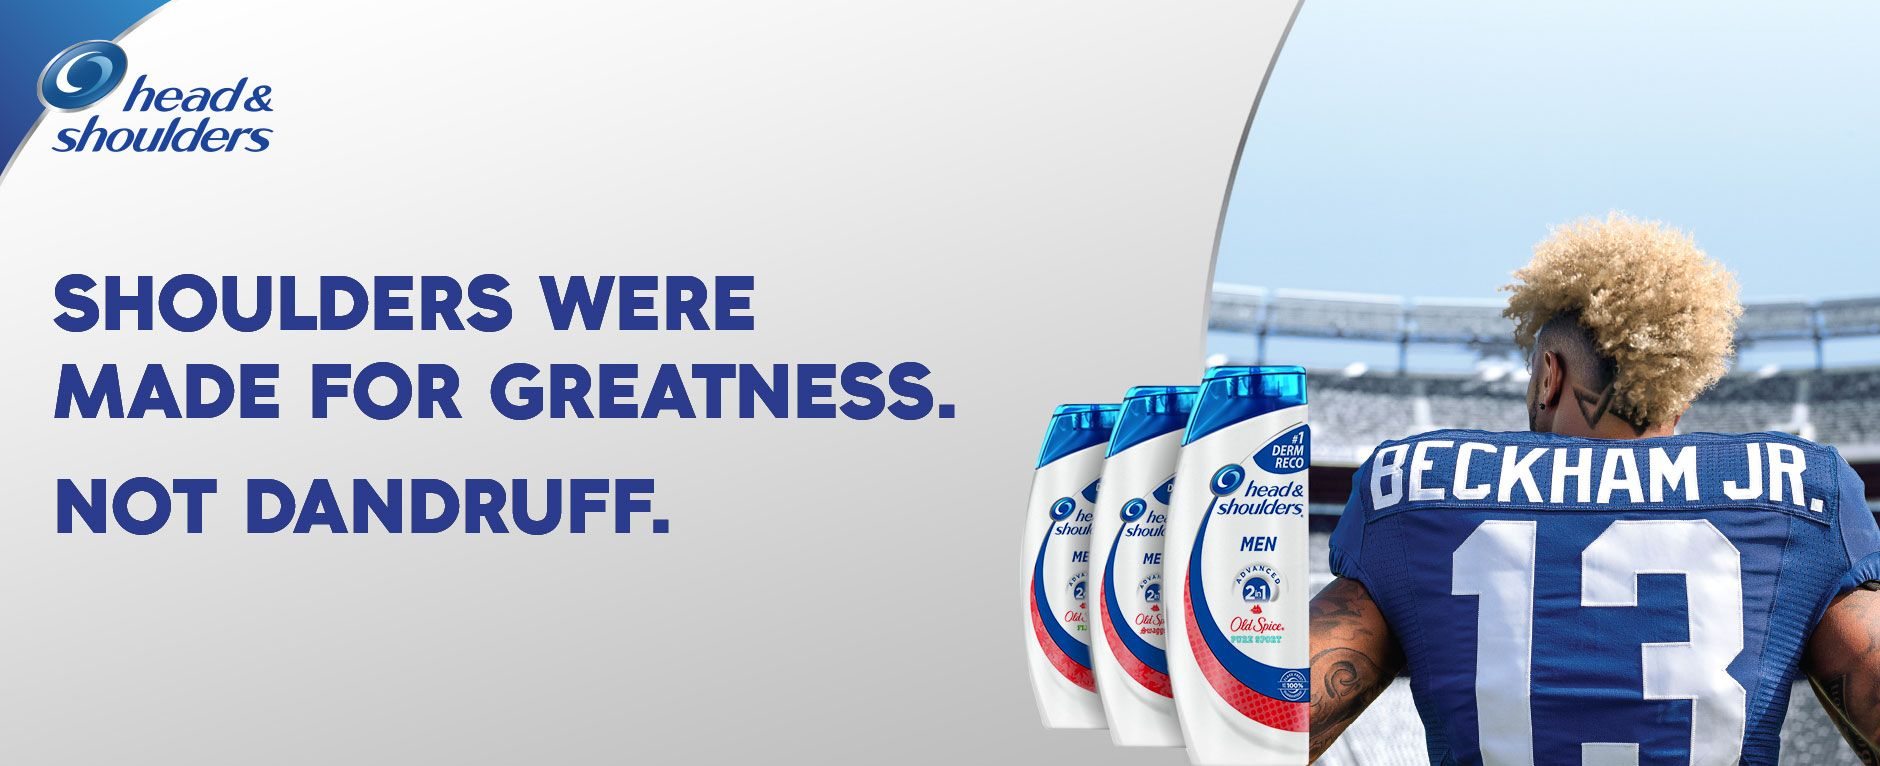 Shoulders were made for greatness. Not dandruff.